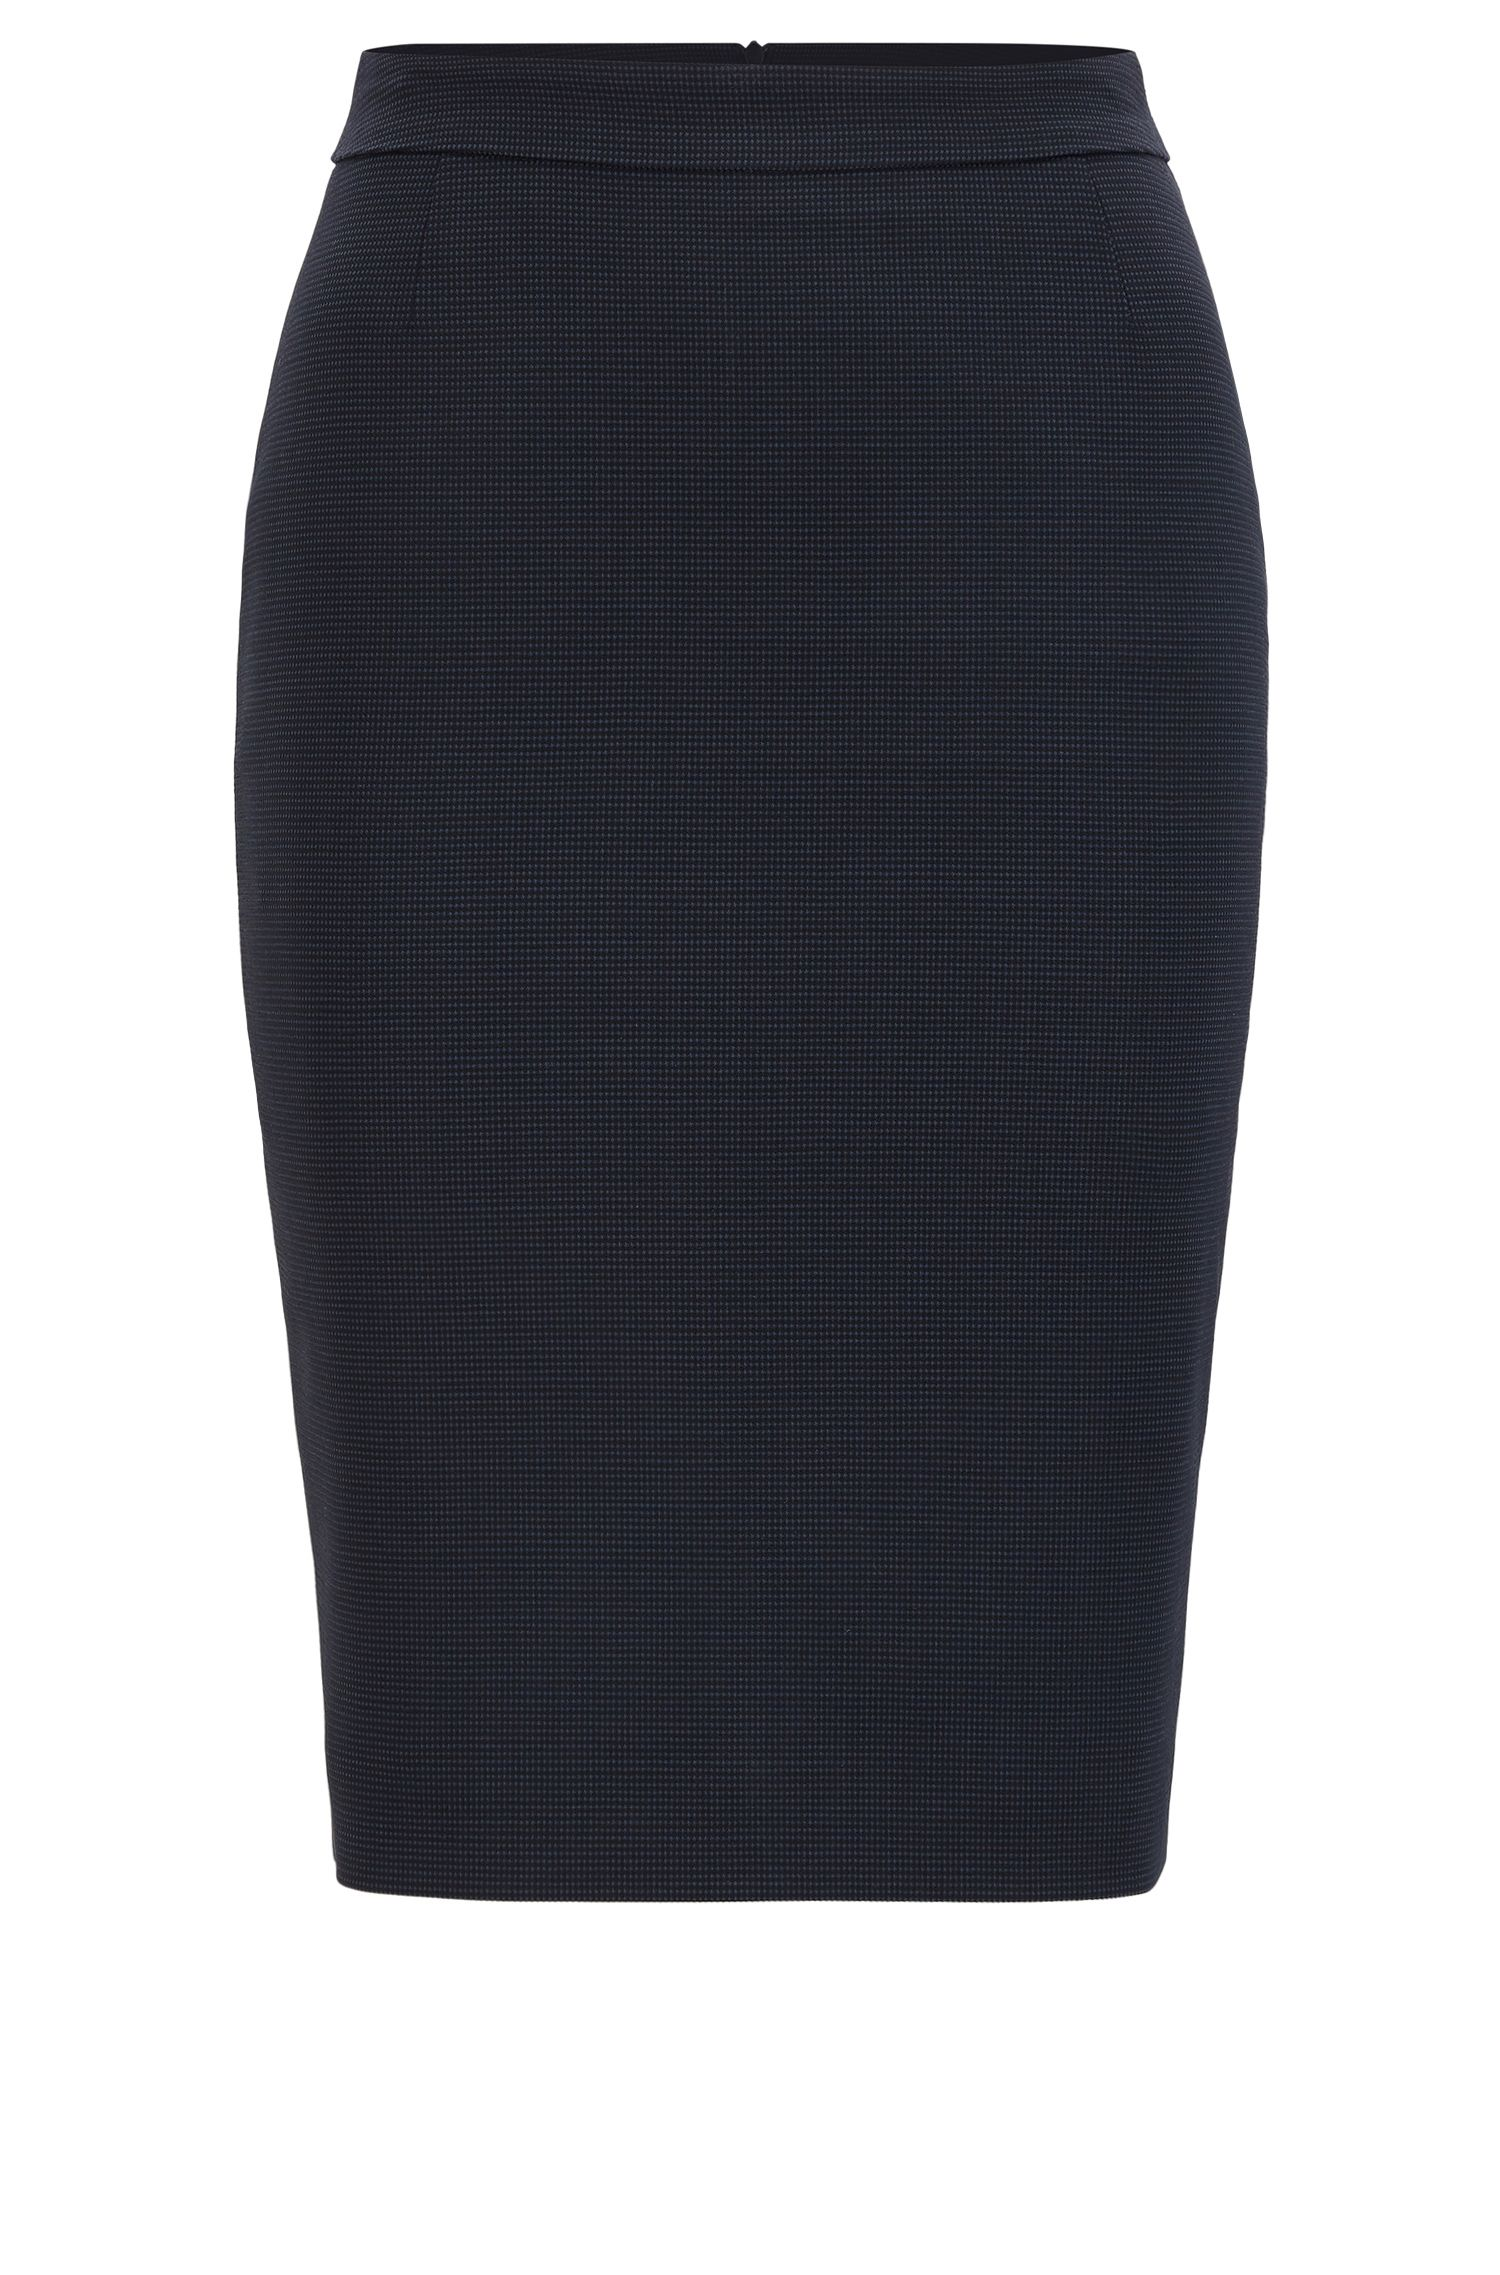 Micro-pattern pencil skirt in stretch wool